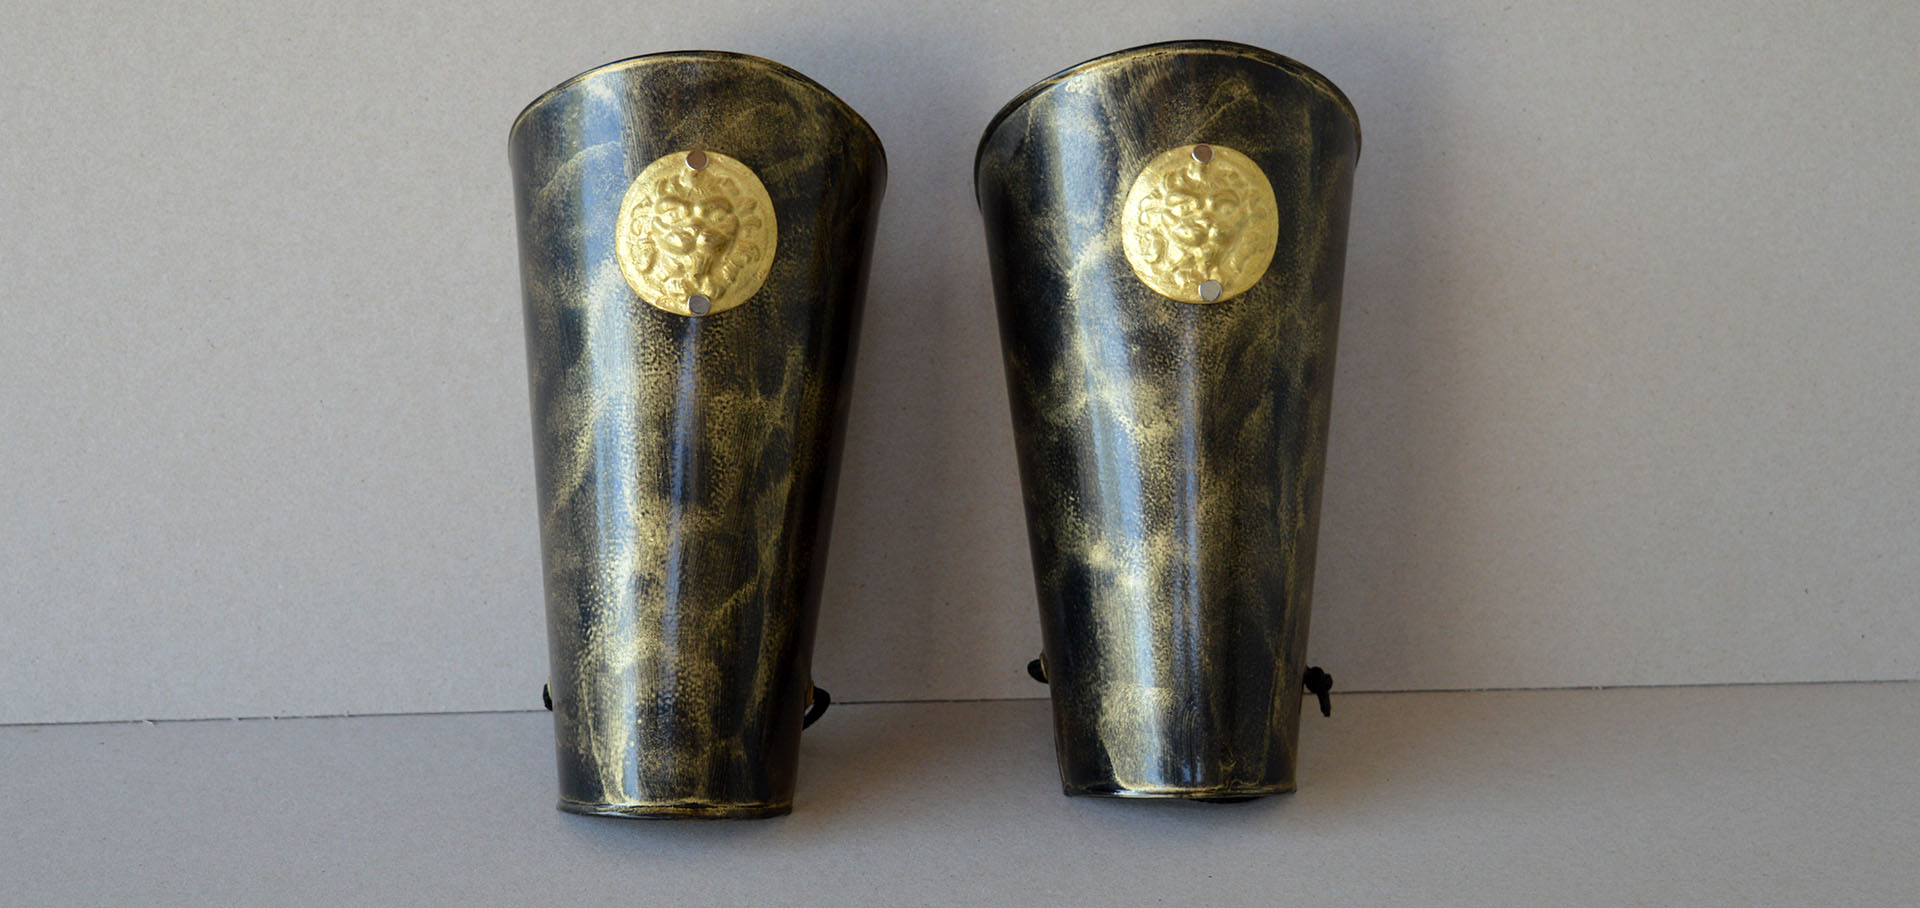 <h2>Leggings</h2><p>Shields, Ancient Helmets</p>